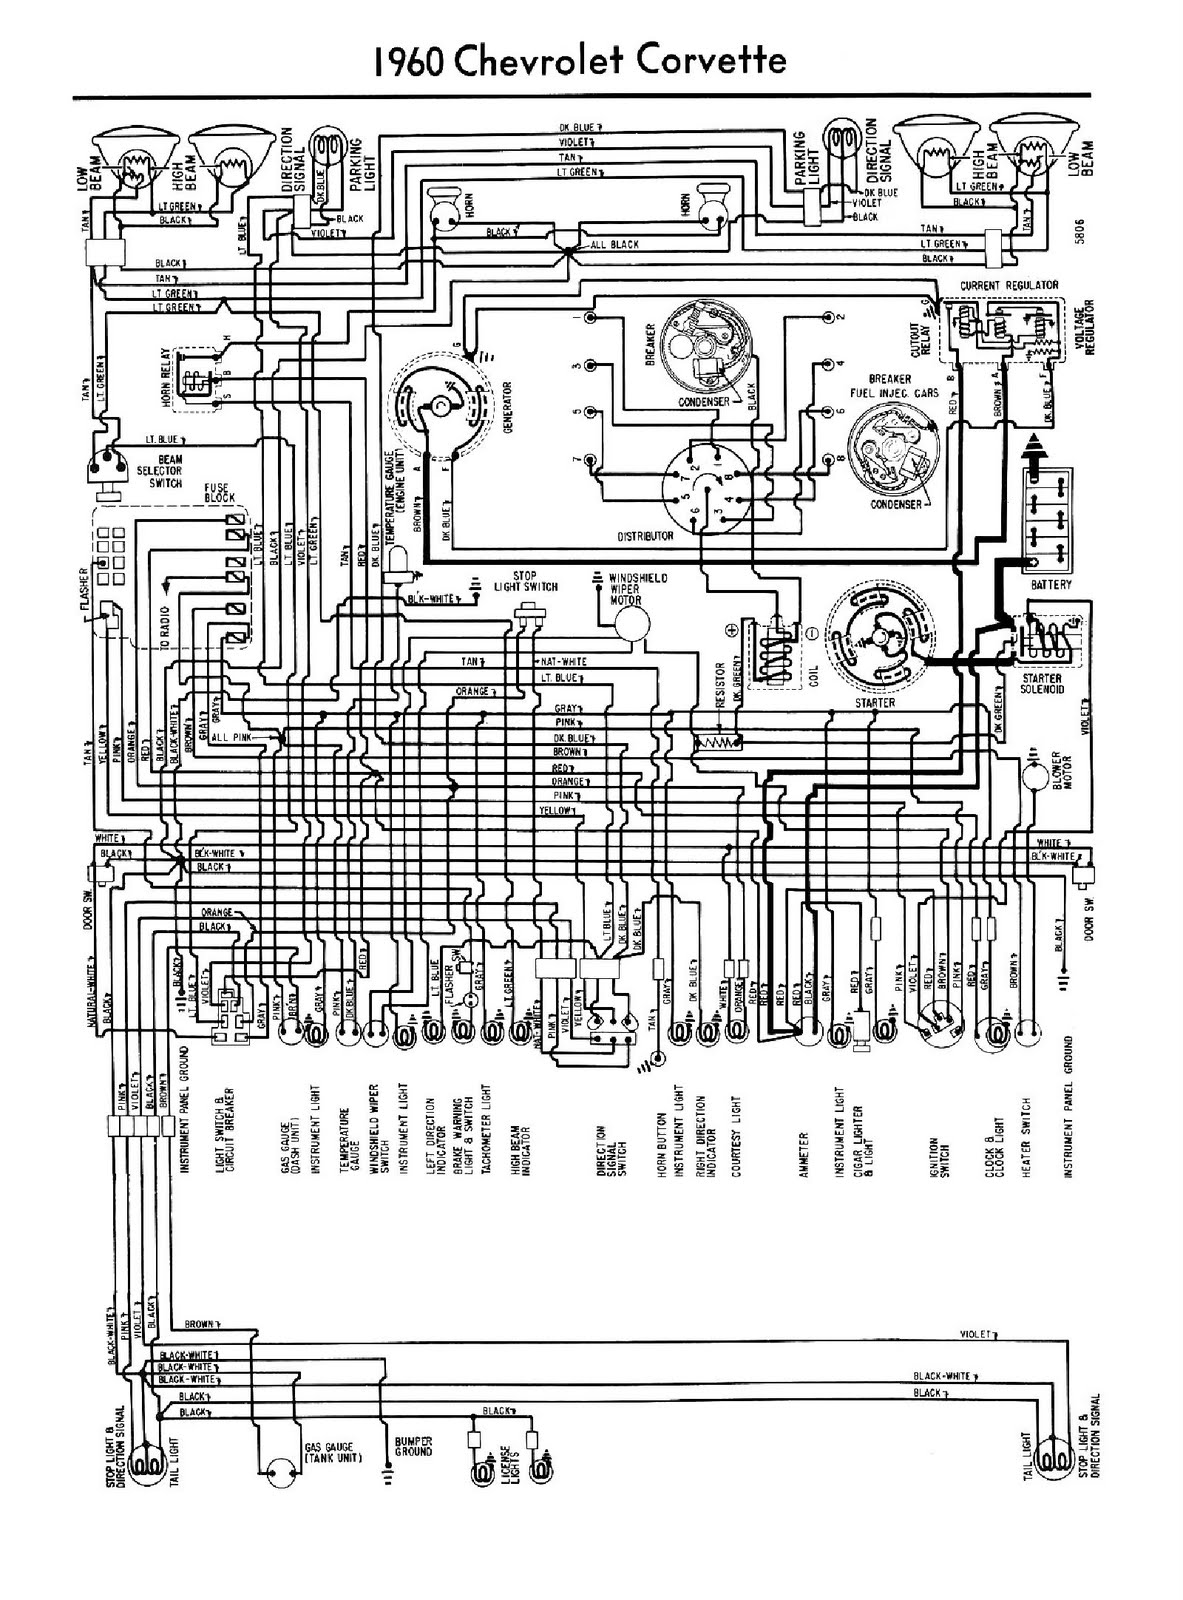 87 corvette dashboard wiring diagram free download 77 corvette wiring diagram free download